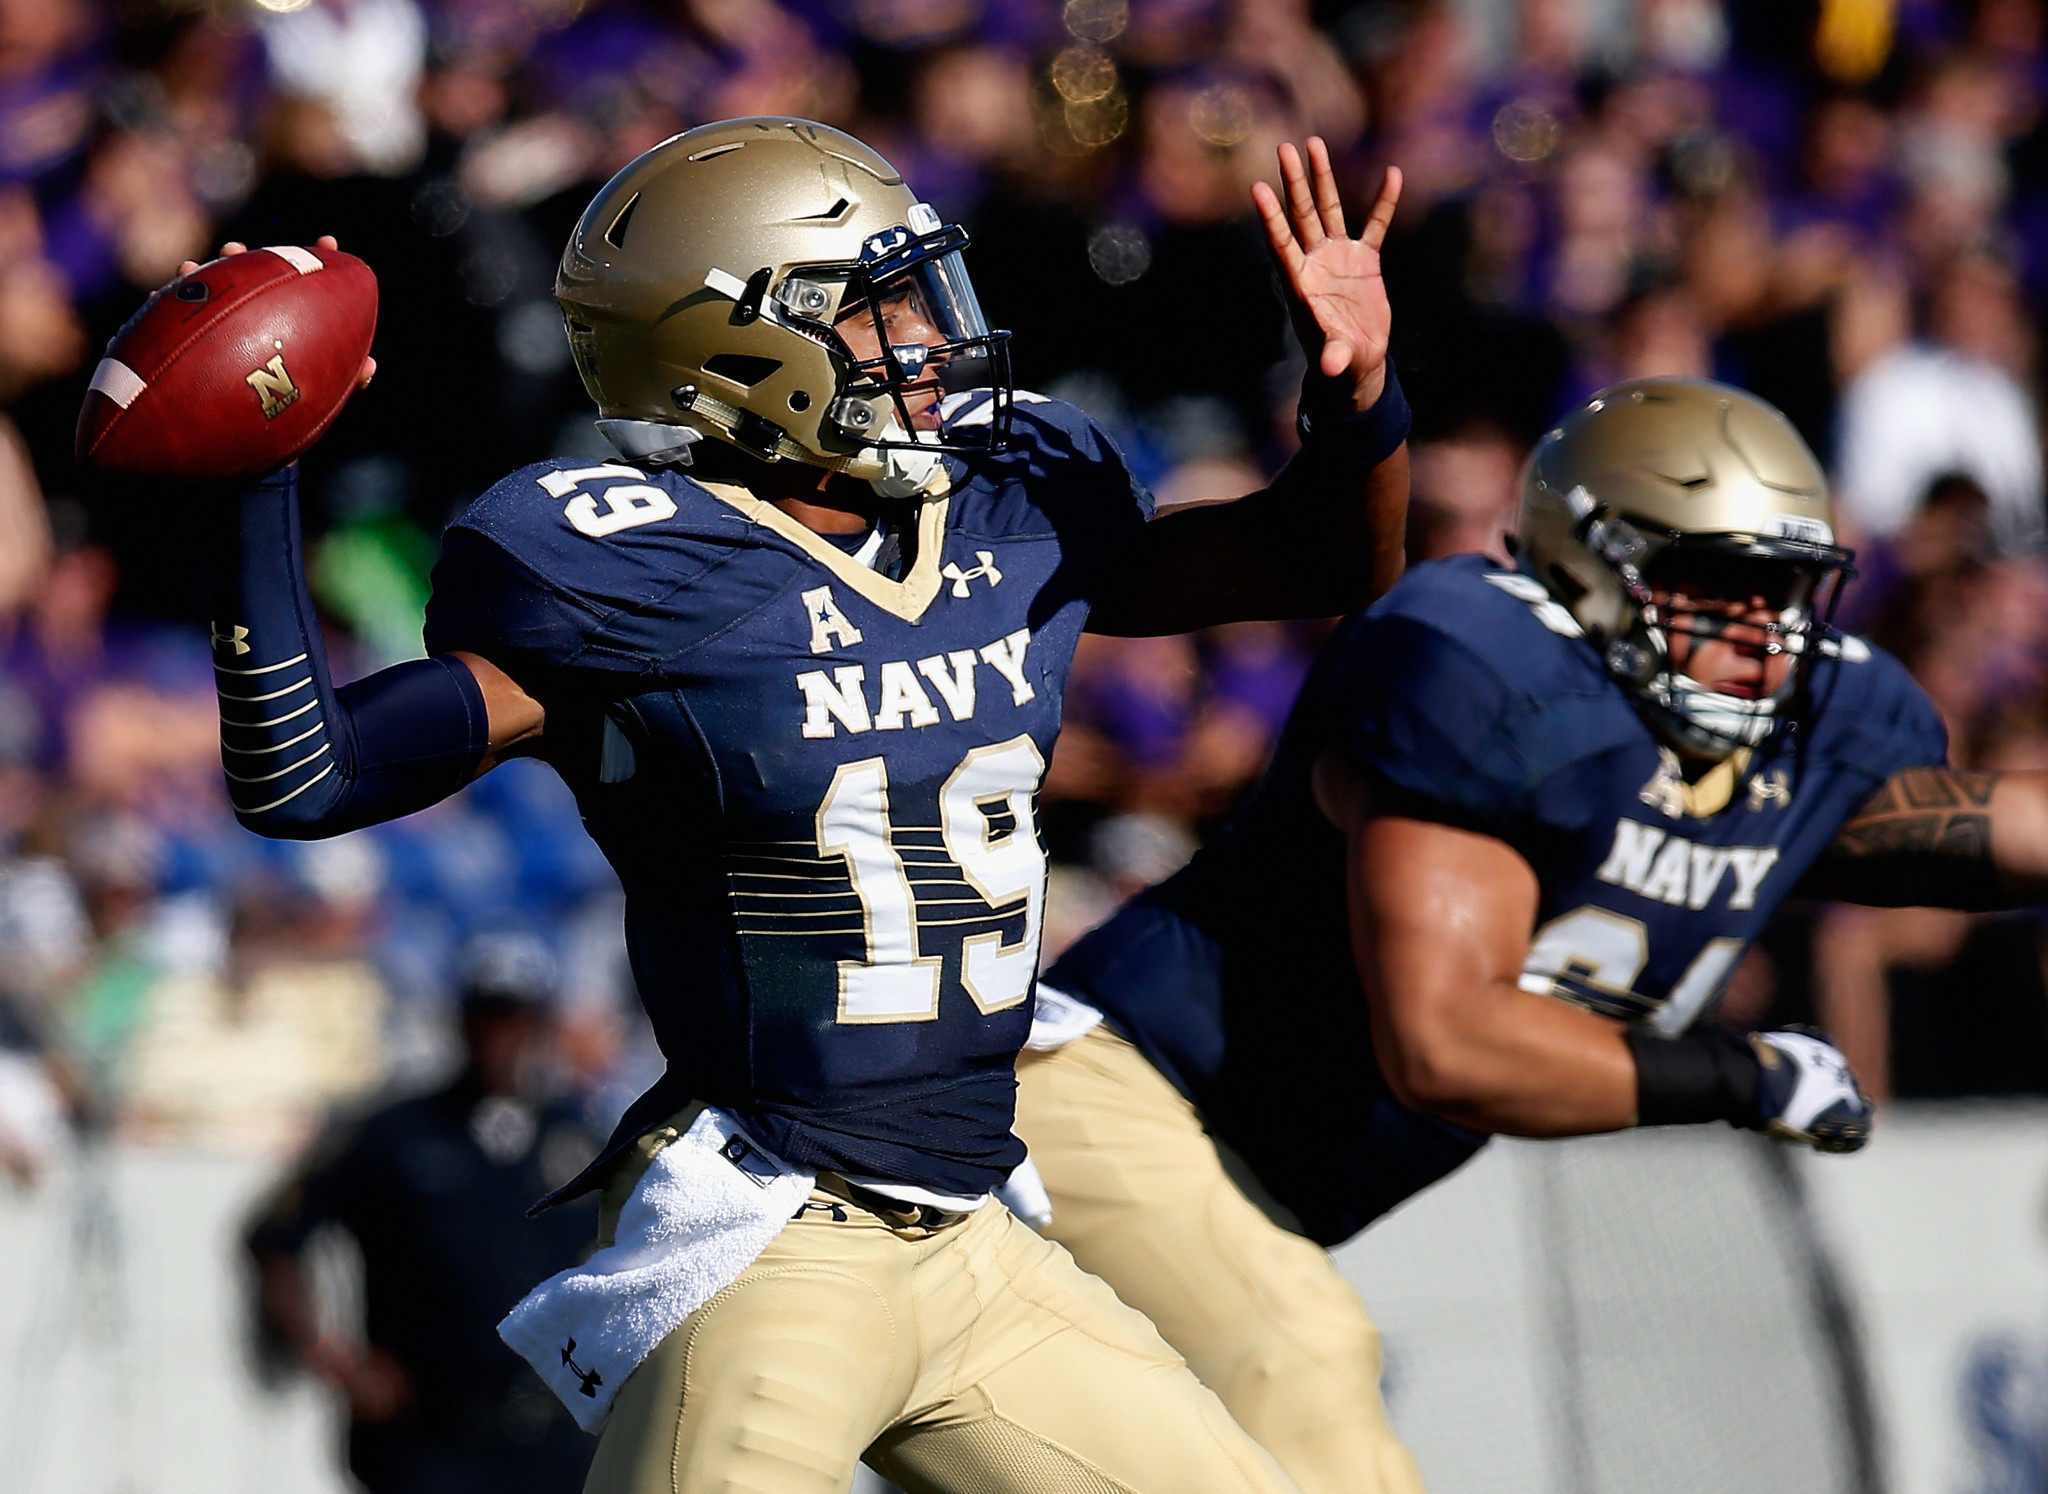 bal-navy-quarterback-keenan-reynolds-vying-for-johnny-unitas-golden-arm-award-20151009